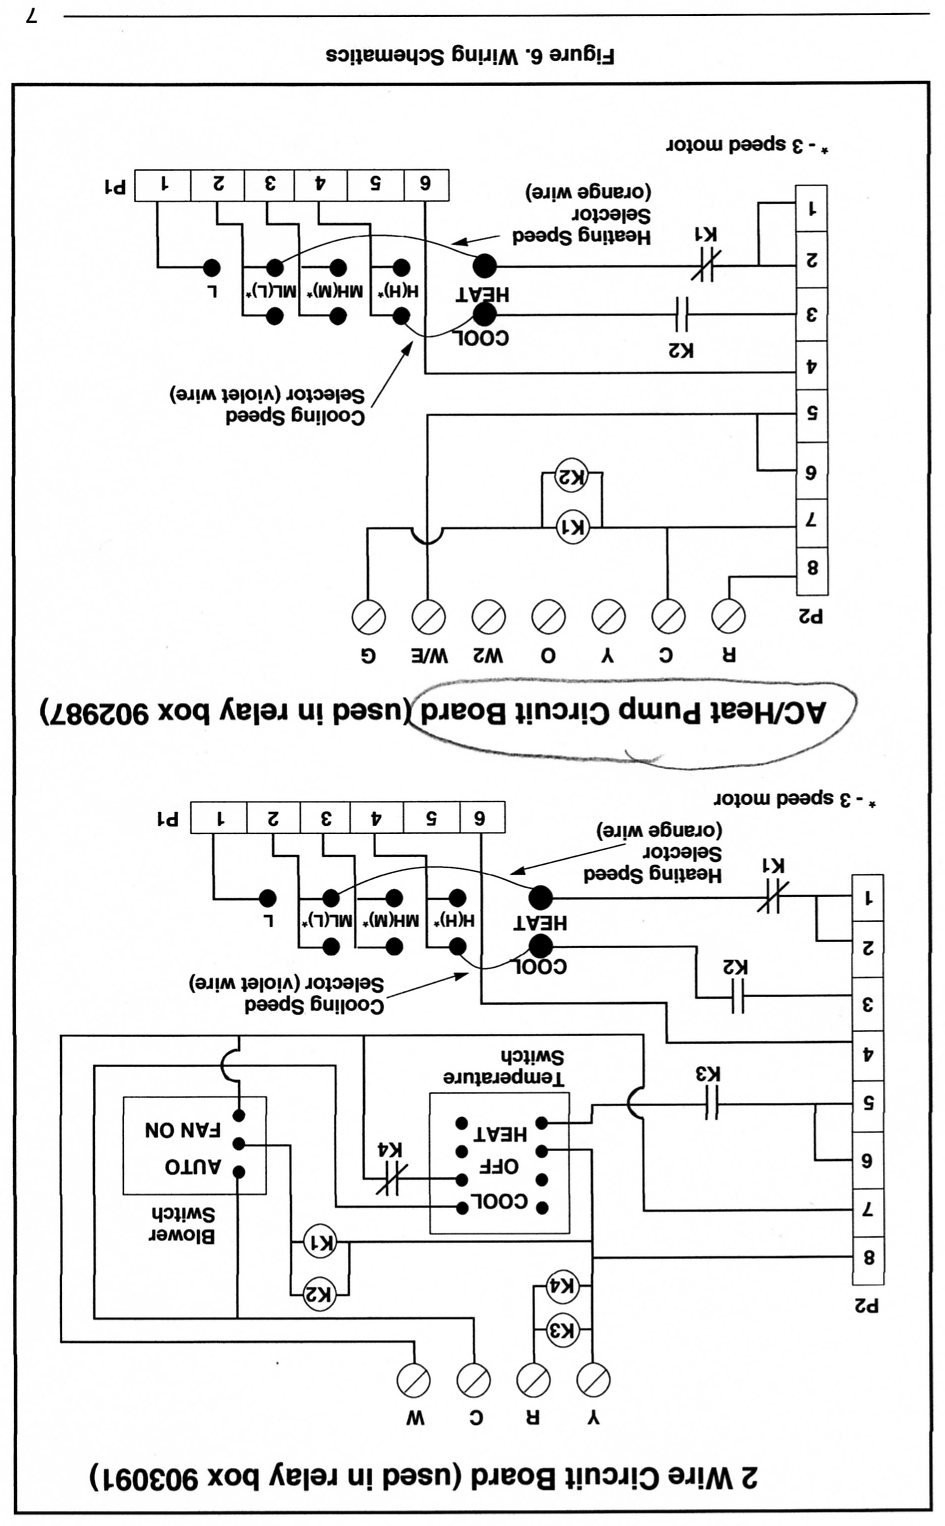 nordyne thermostat wiring diagram Collection-Awesome Nordyne Thermostat Wiring Diagram Contemporary Fancy Furnace 14-p